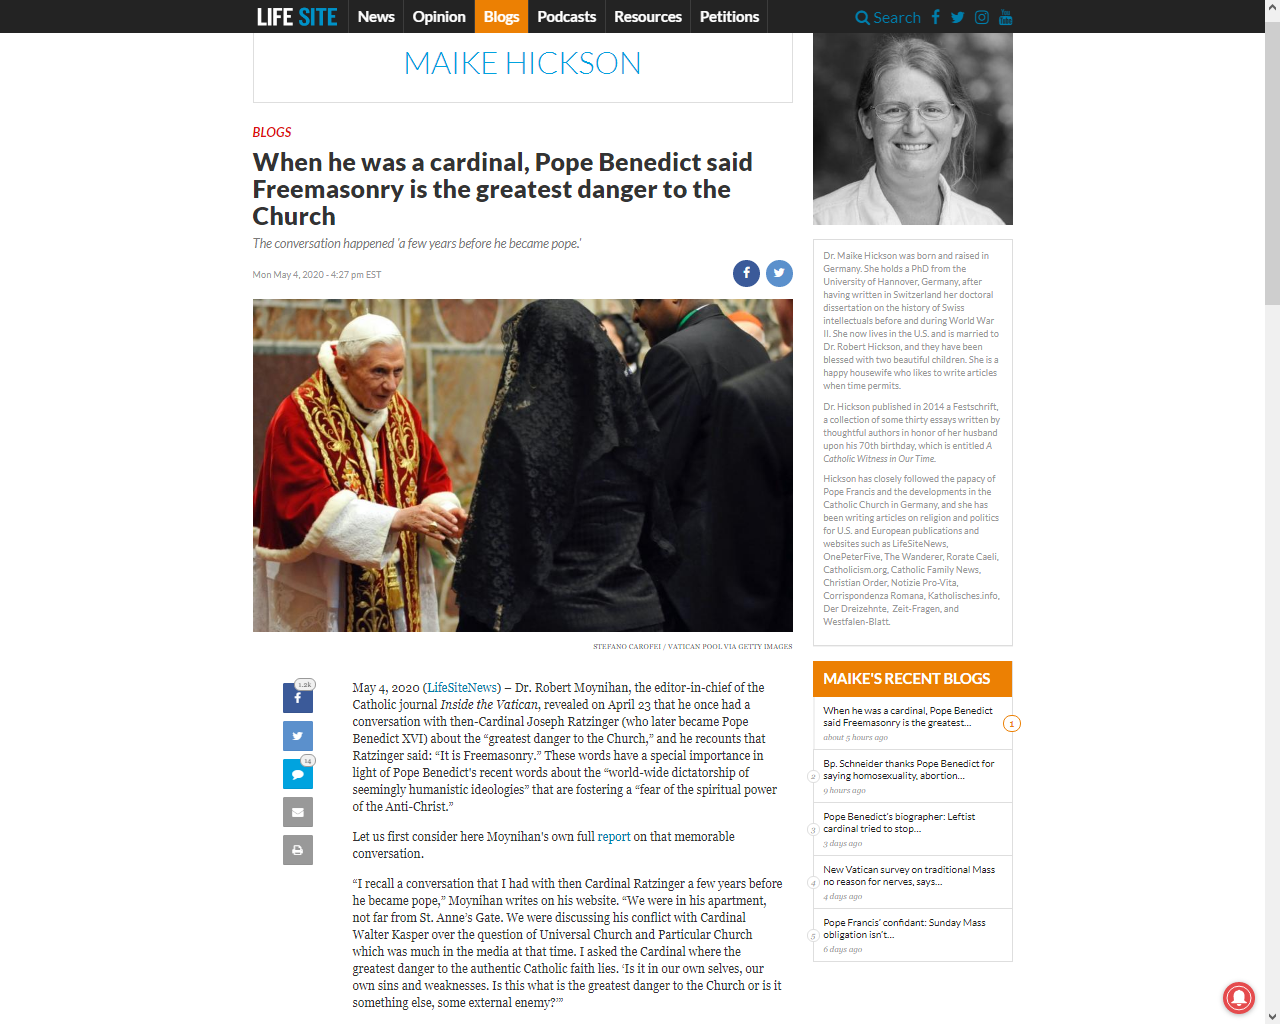 https://www.lifesitenews.com/blogs/when-he-was-a-cardinal-pope-benedict-said-freemasonry-is-the-greatest-danger-to-the-church